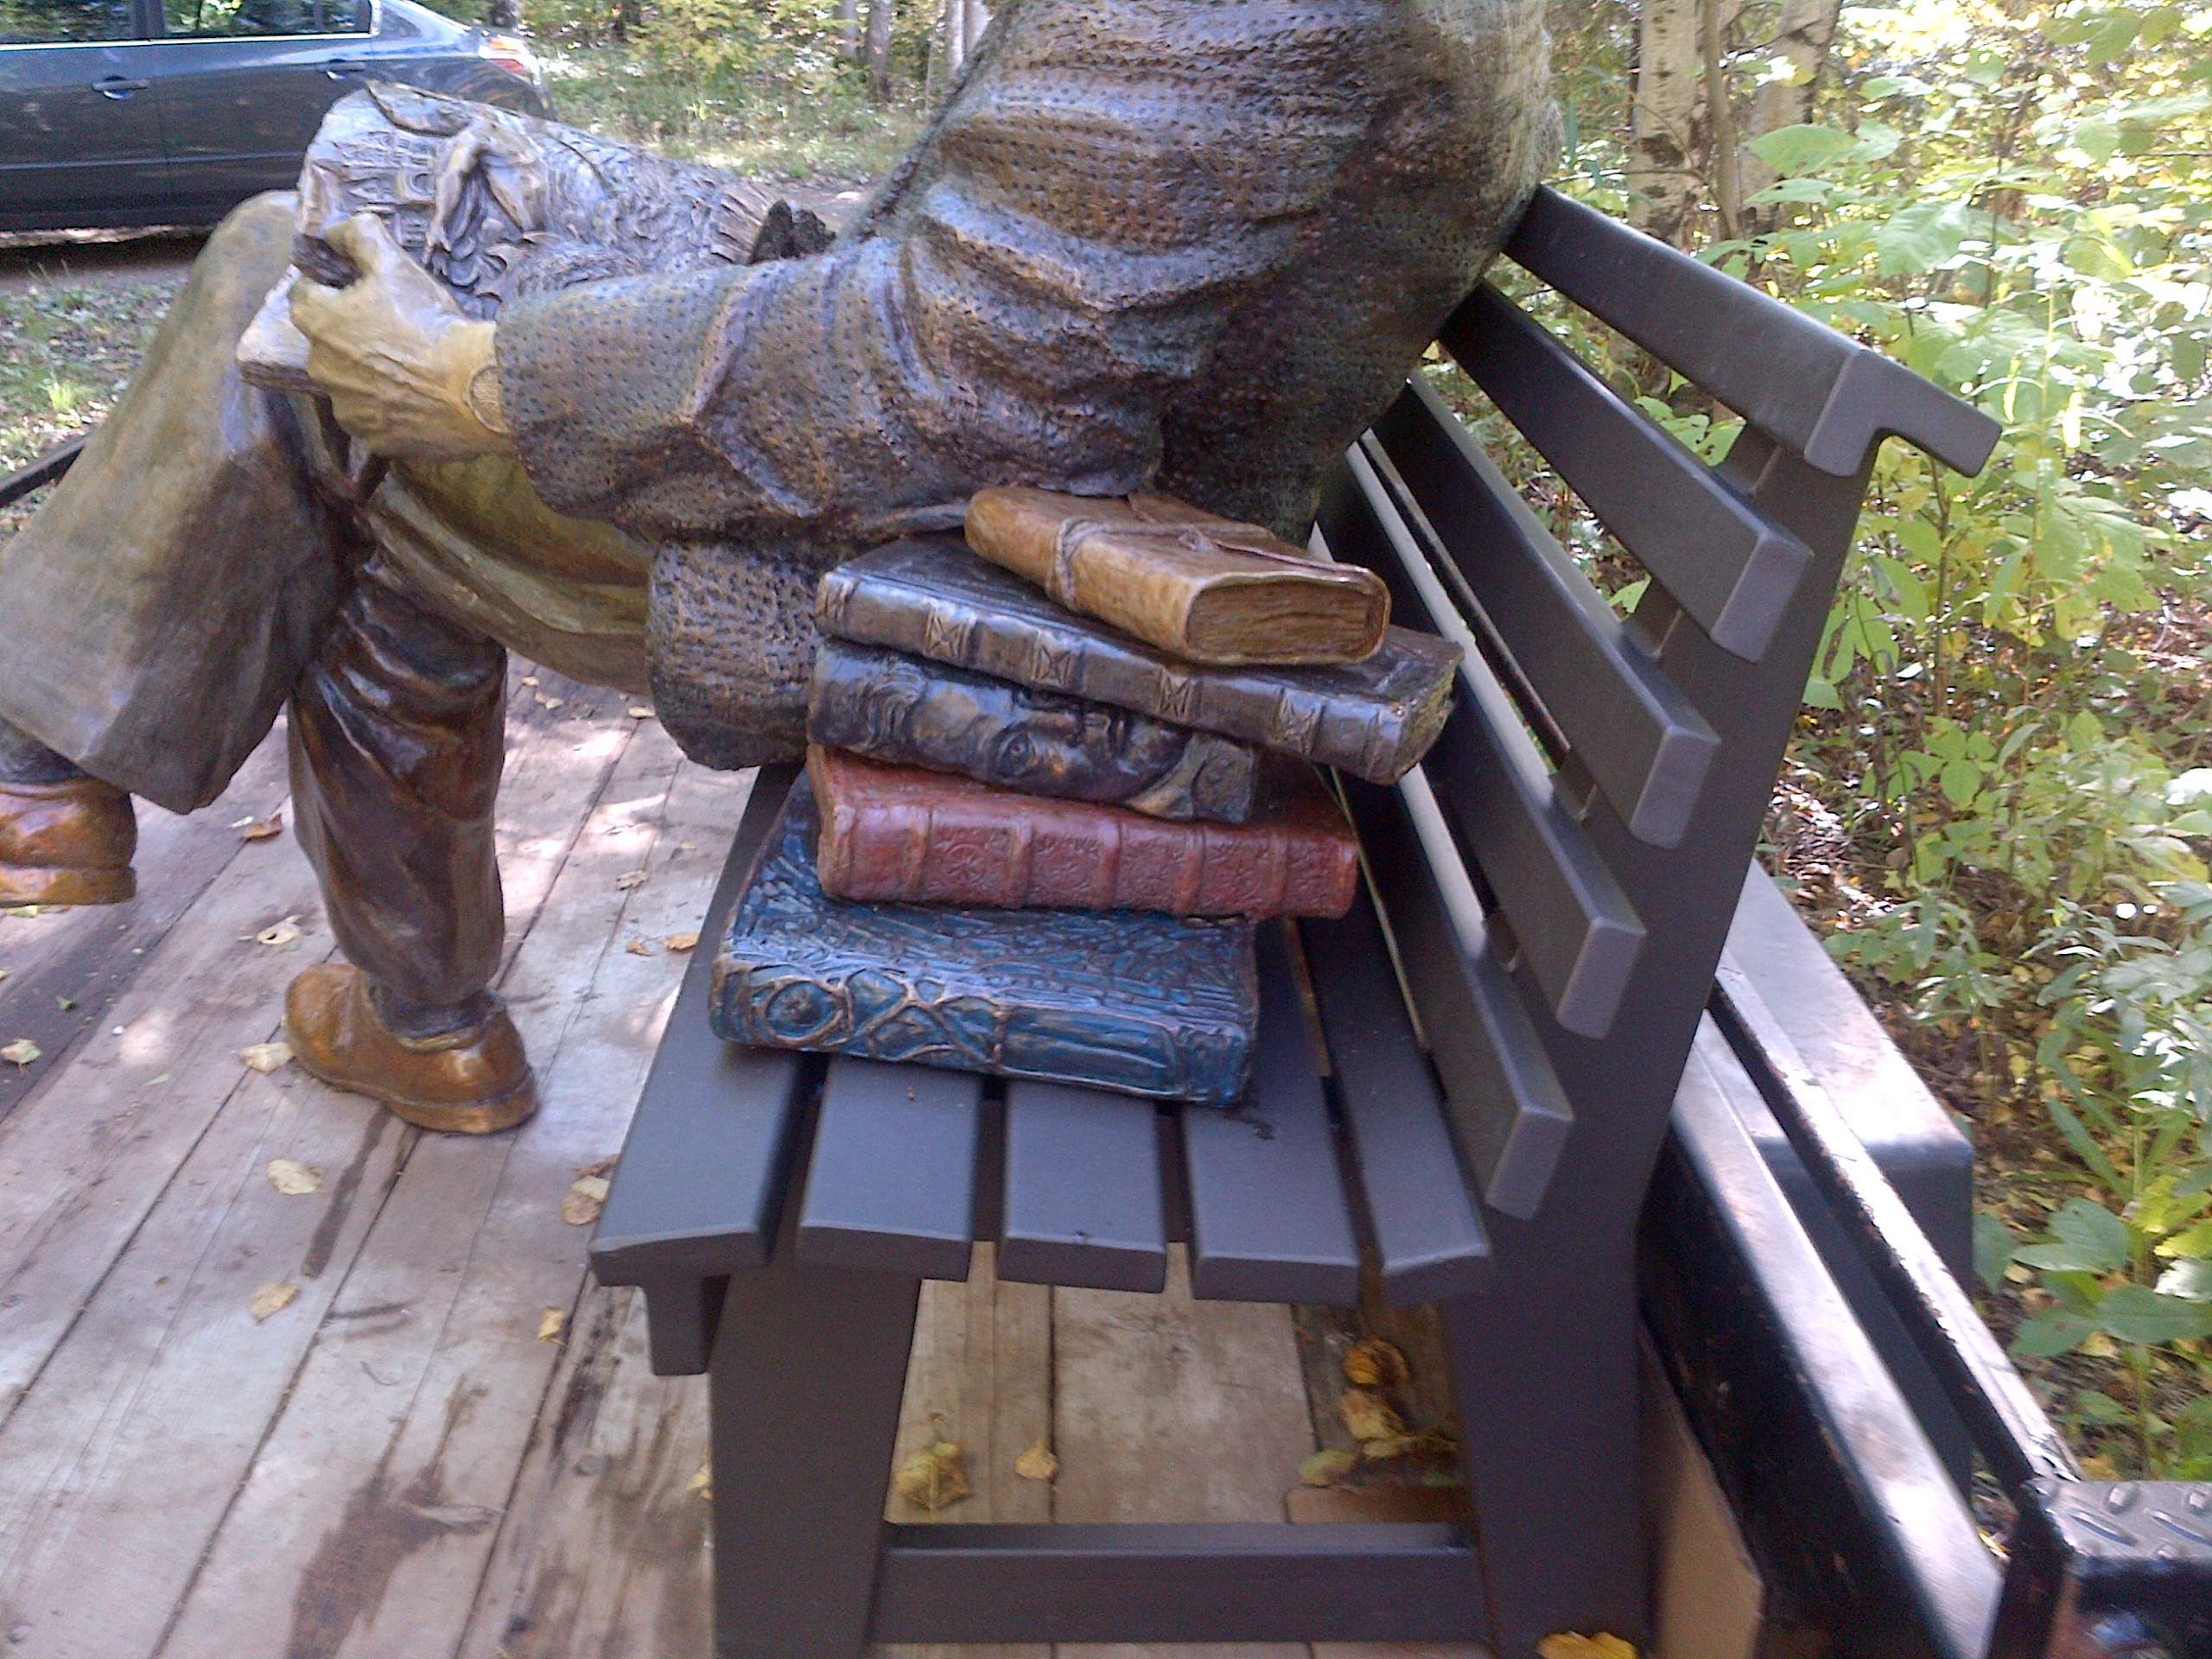 Northrop Frye Sculpture, (bronze) book detail Victoria University Toronto photo by Paul Gooch